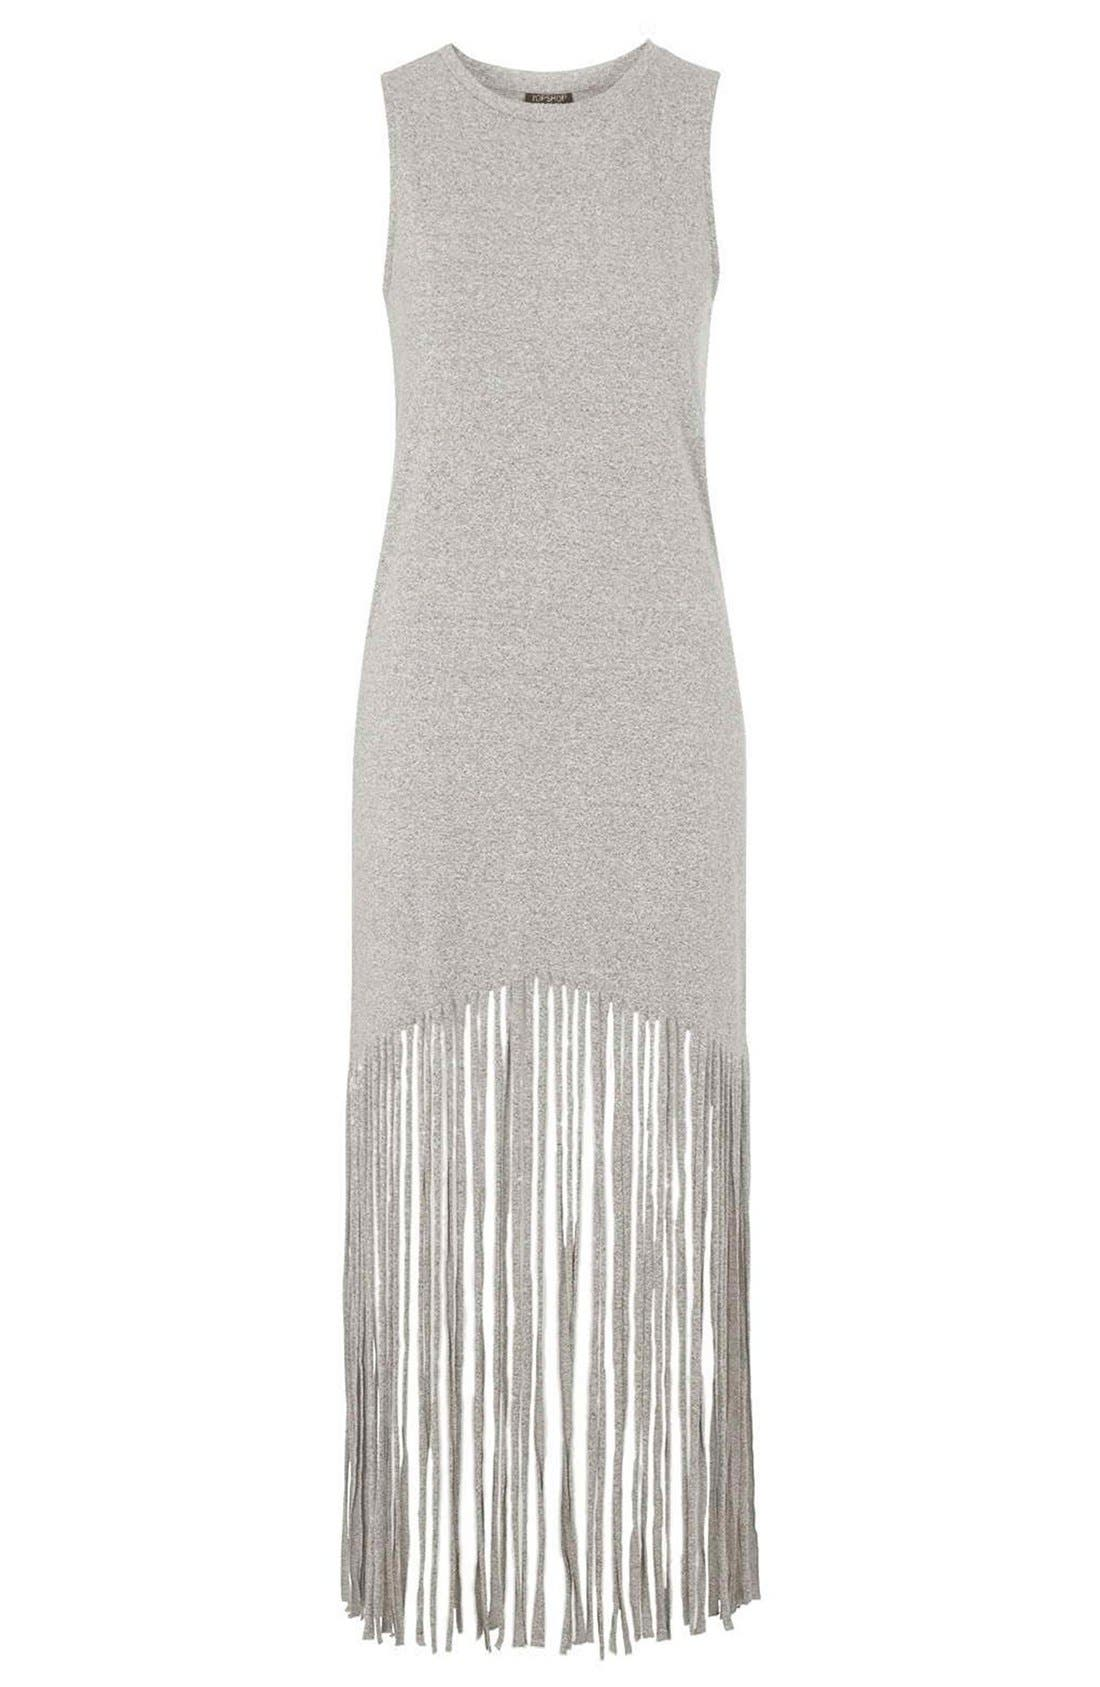 Sleeveless Fringe Dress,                             Alternate thumbnail 3, color,                             Grey